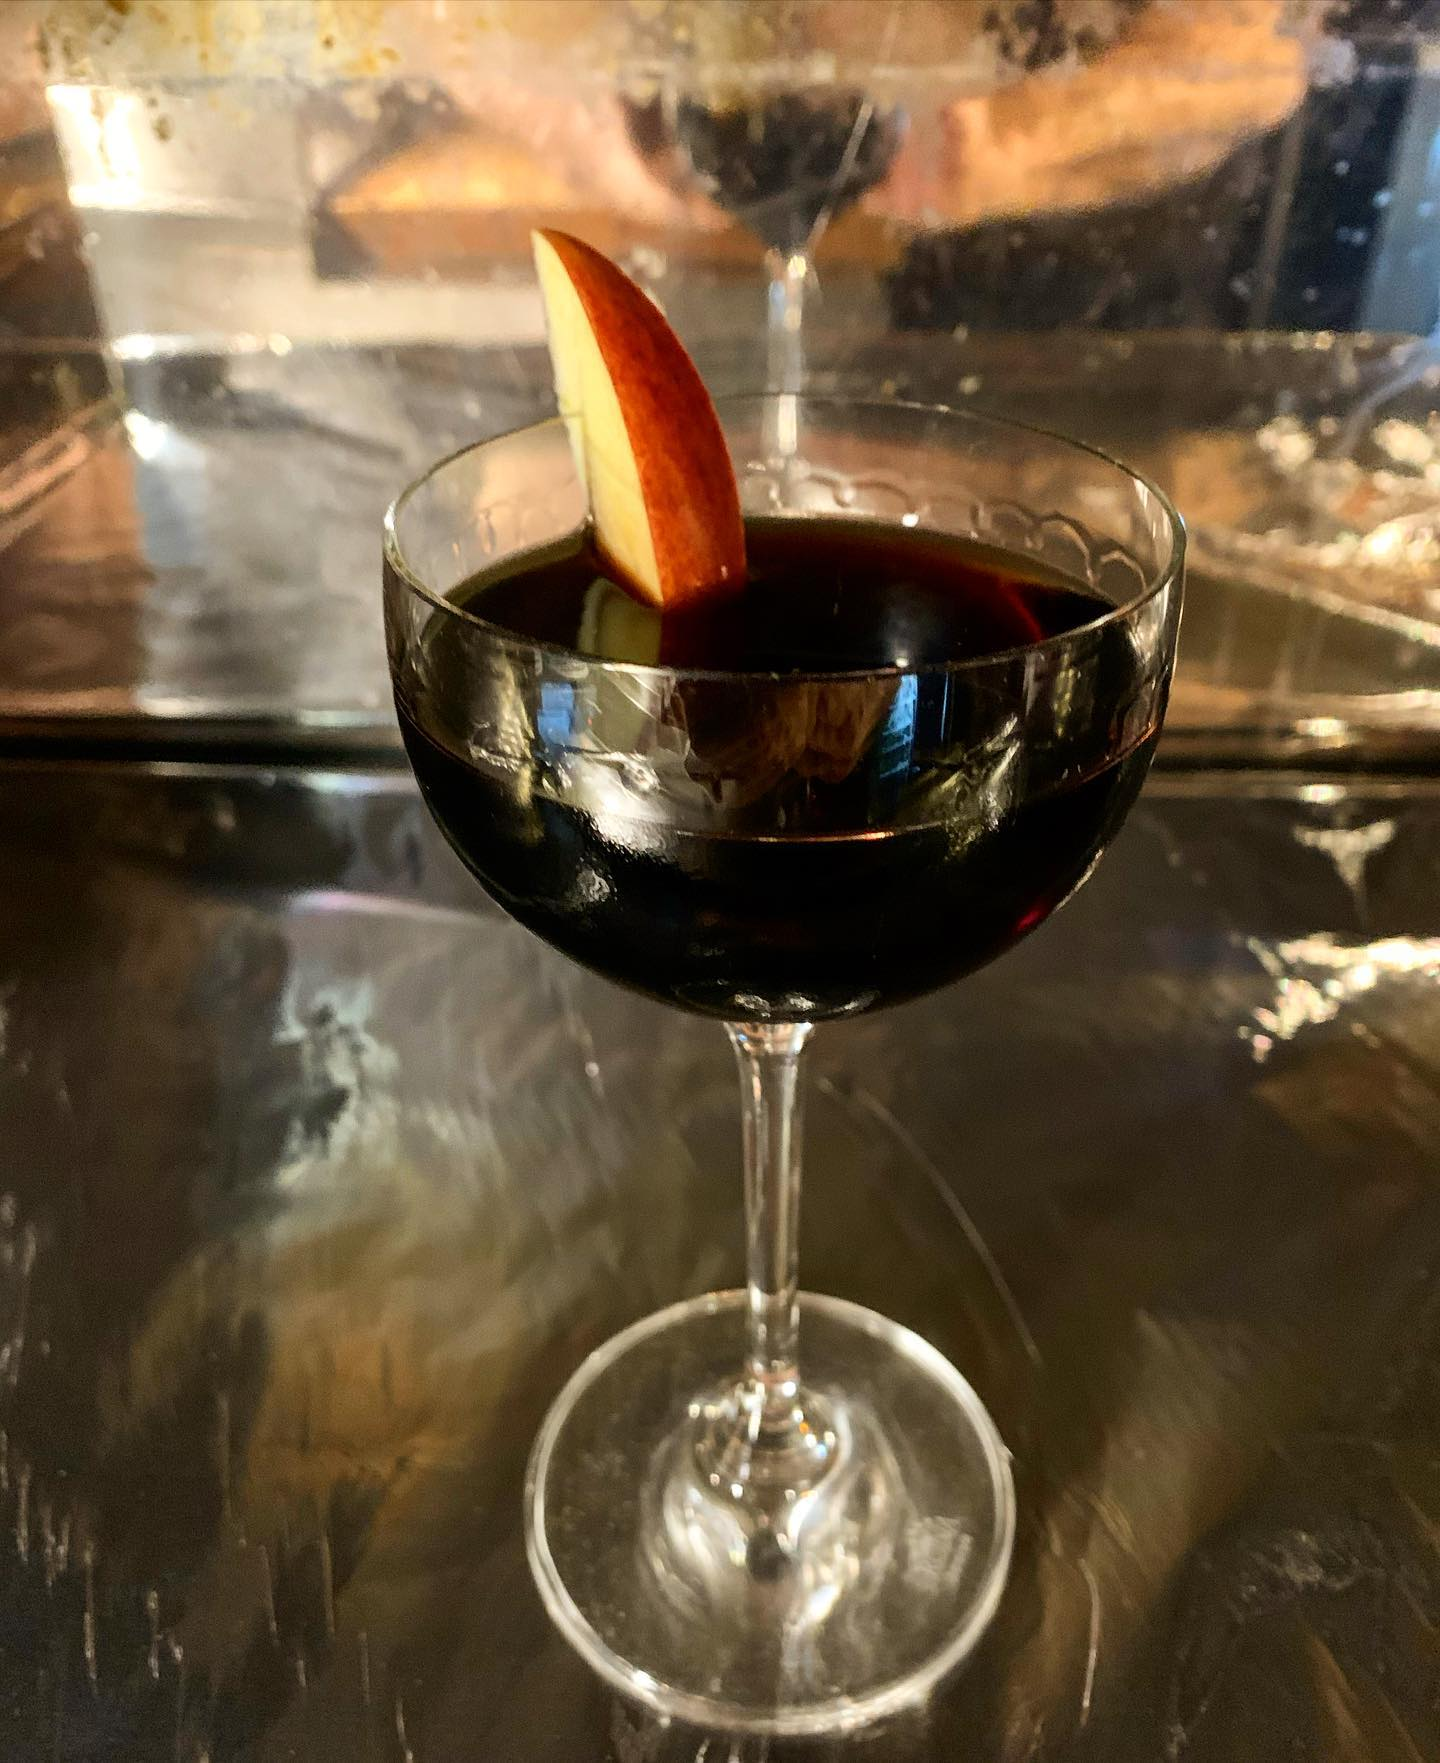 Veckans Cocktail:The Current State Of Things :Svart Vinbärsbrännvin, Calvados, Cassis Noir de Bourgogne, Maraschino, Gran Classico, Aztec Chocolate Bitters, Walnut Bitters #cocktail#cocktails